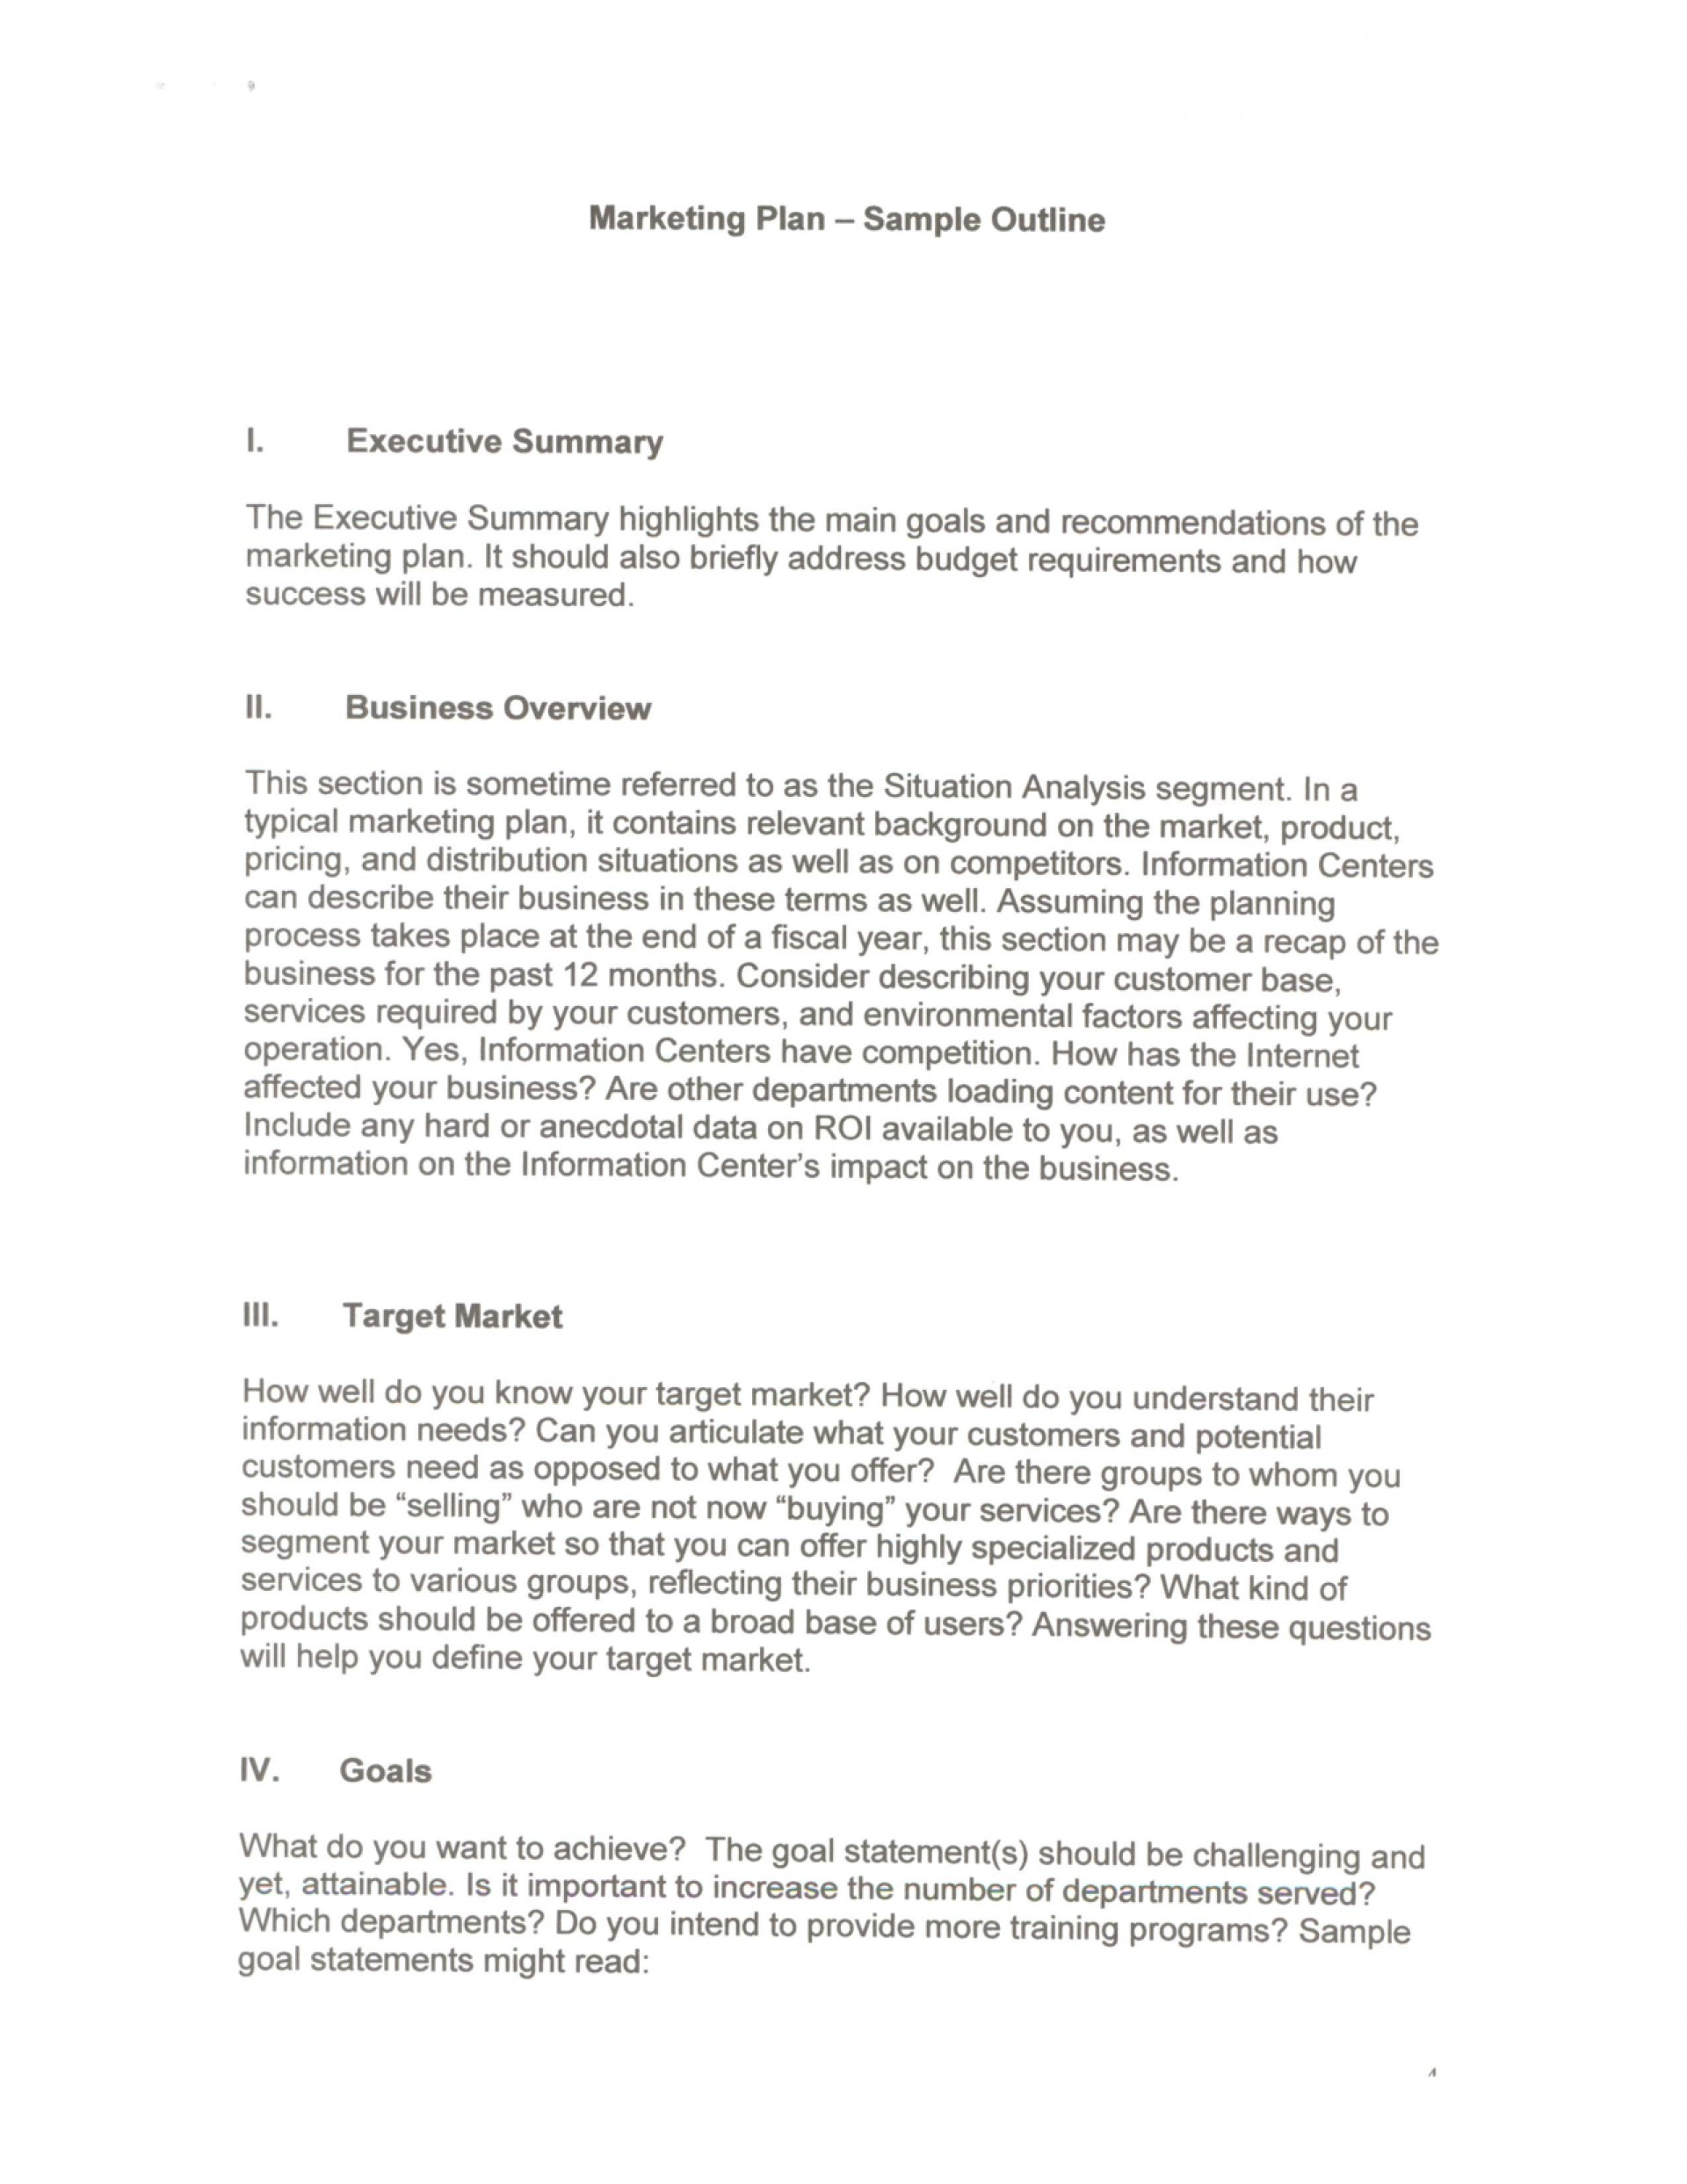 016 Research Paper Executive Summary Marketing Plan Example 384040 Amazing Apa Format 1920